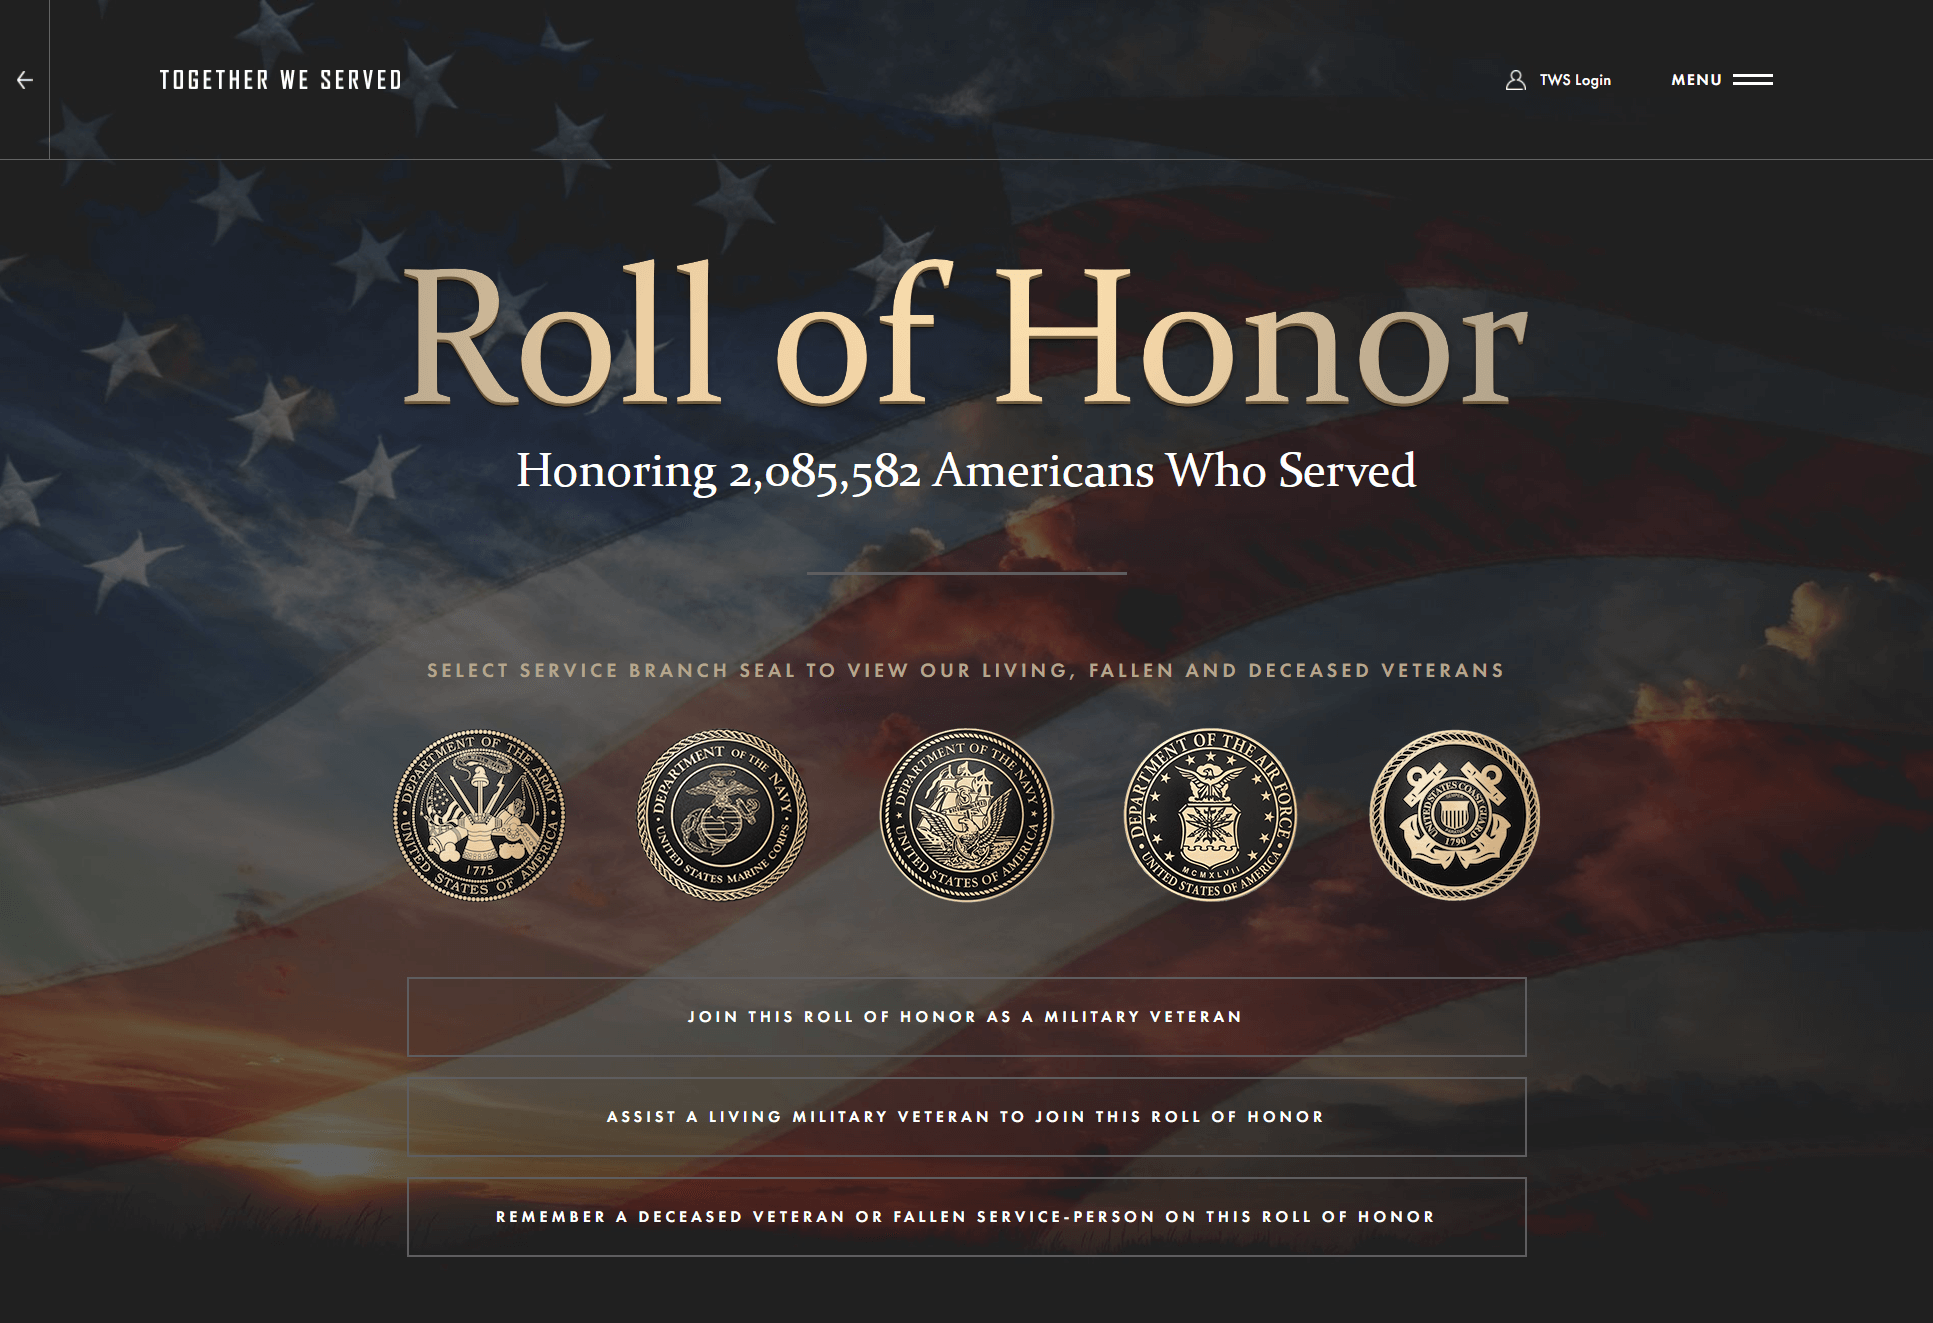 rollofhonor.togetherweserved.com-1